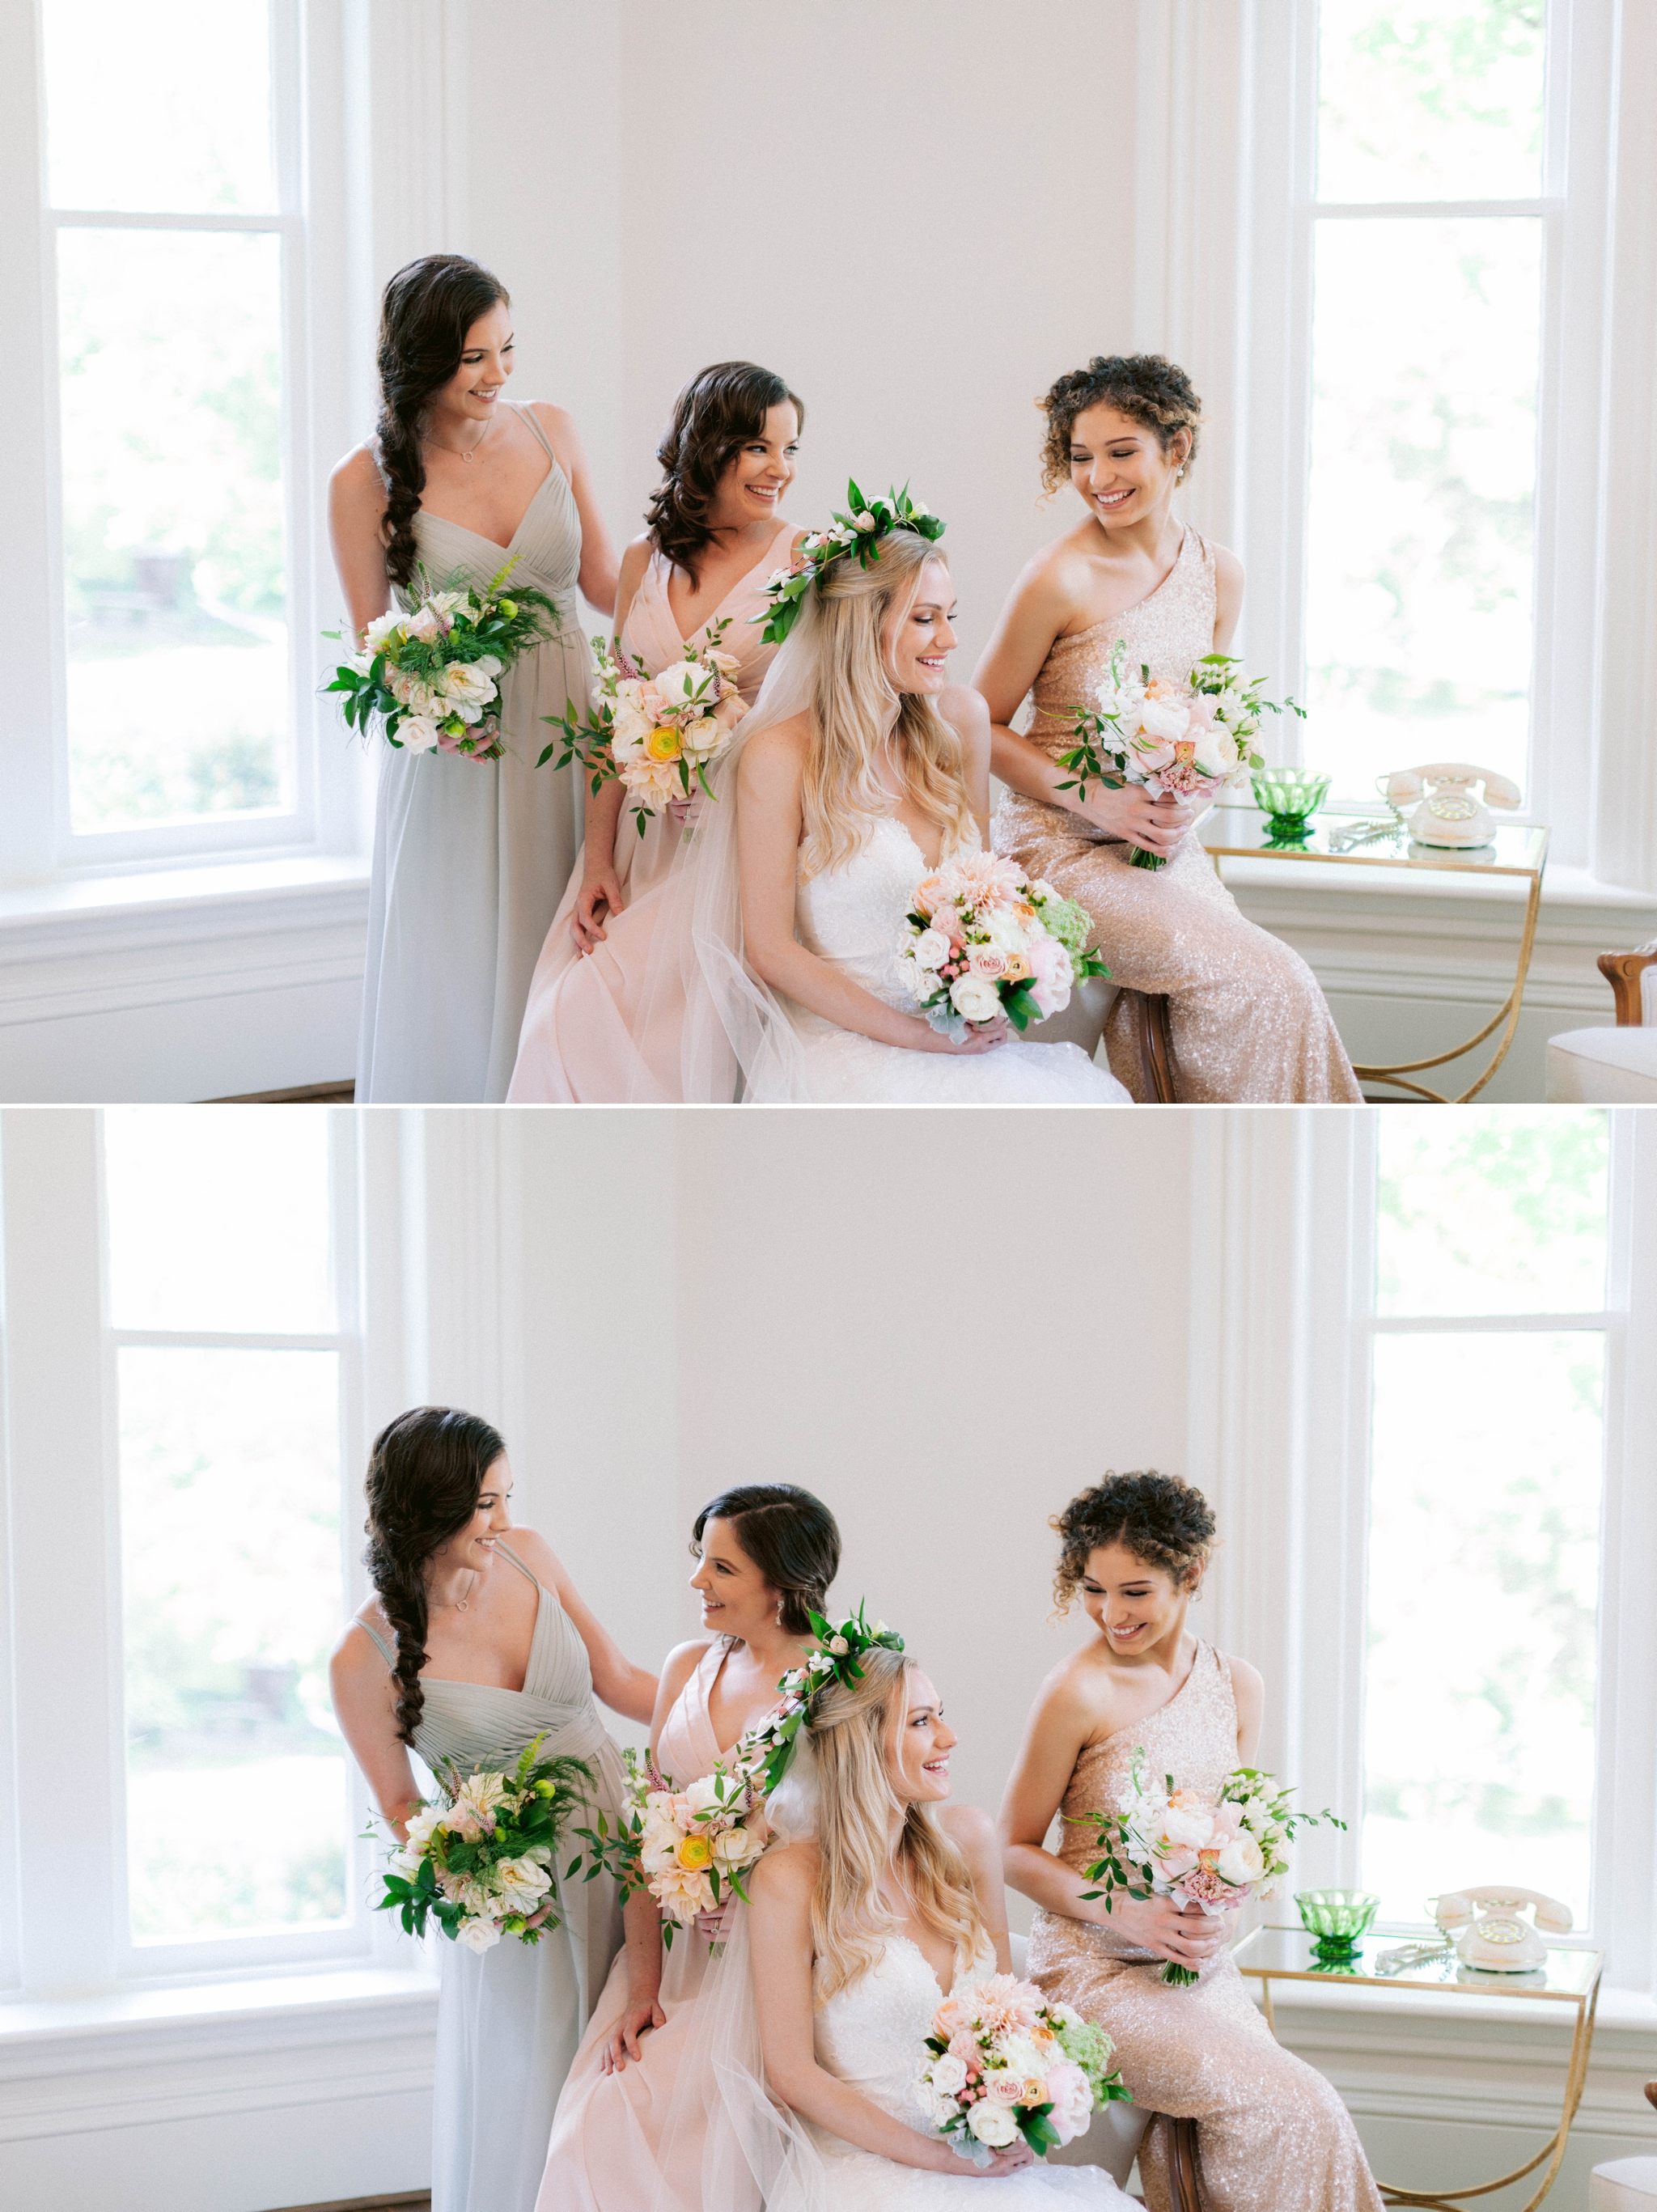 Indoor Bride + bridesmaids portraits in an all white room at a luxury estate with natural light before the ceremony sitting on a chair for an editorial shot - Bride is wearing a Hawaiian Flower Crown and a cathedral veil in a Wedding Gown by Stella York - Honolulu Oahu Hawaii Fine Art Wedding Photographer - Johanna Dye Photography - edited with for the love of film presets by jose villa